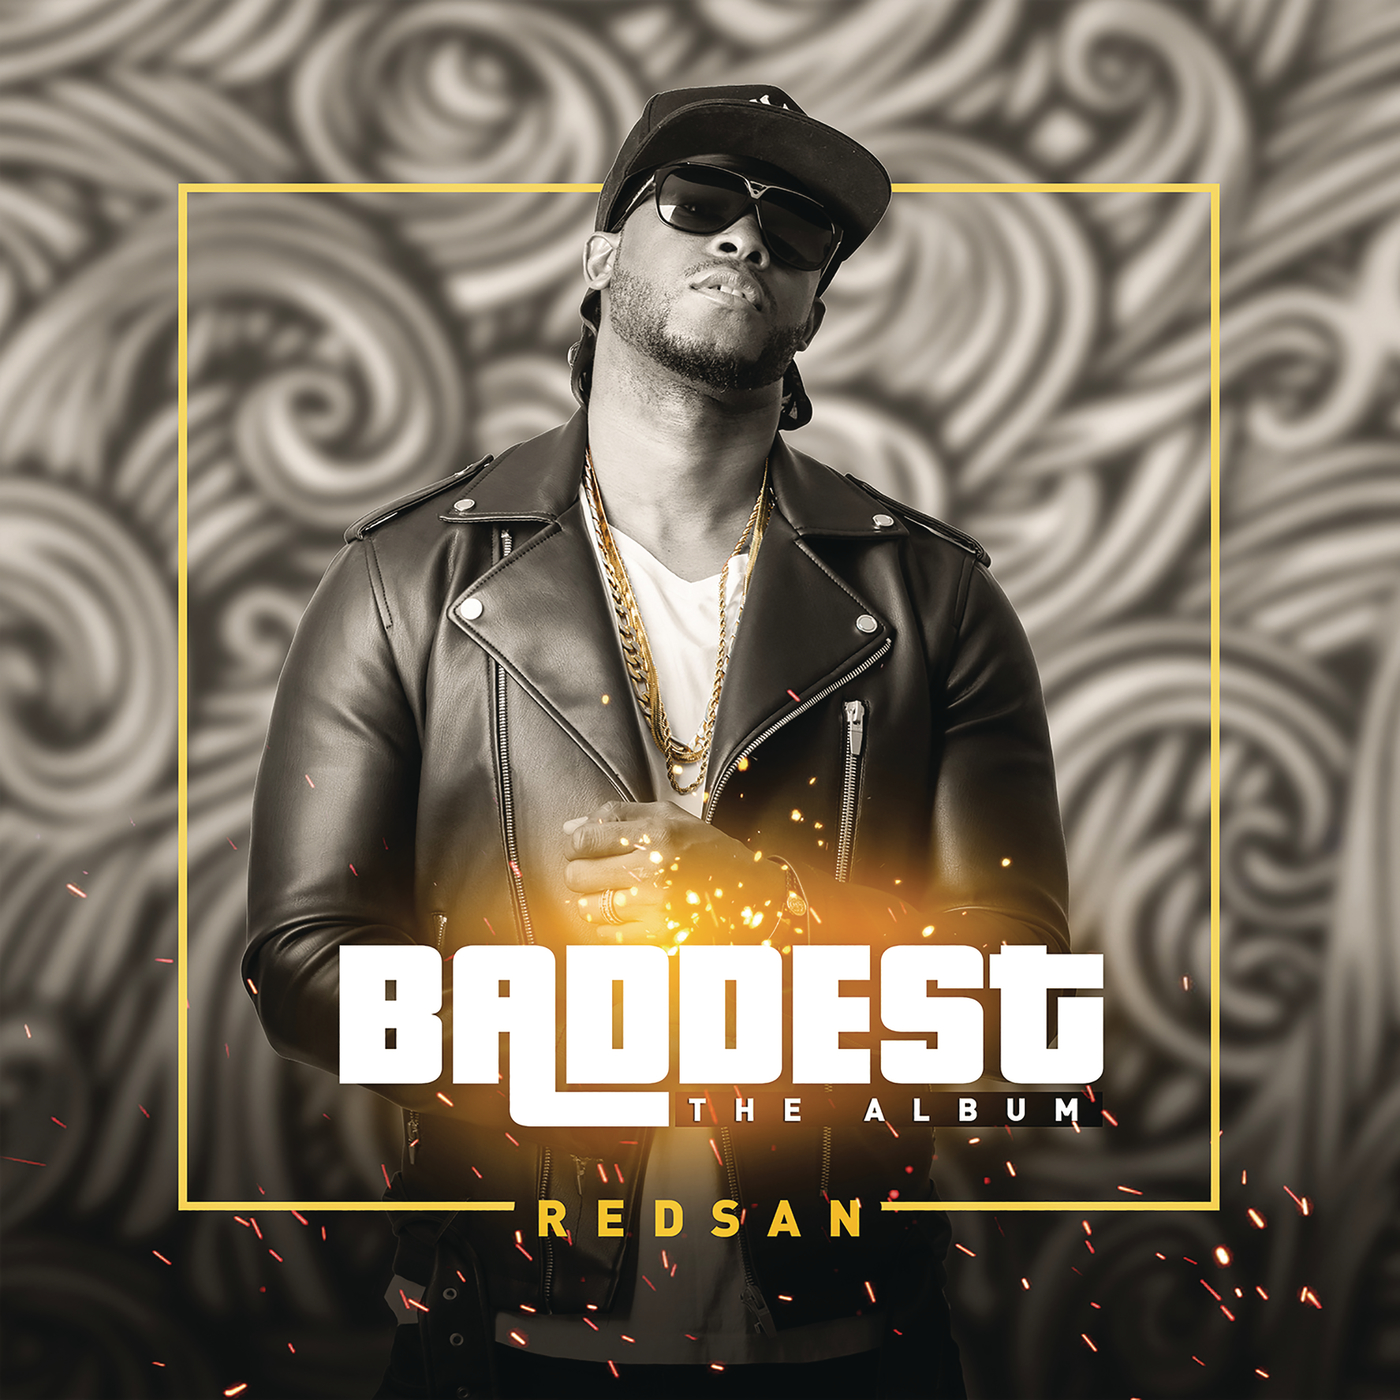 The Baddest - Redsan